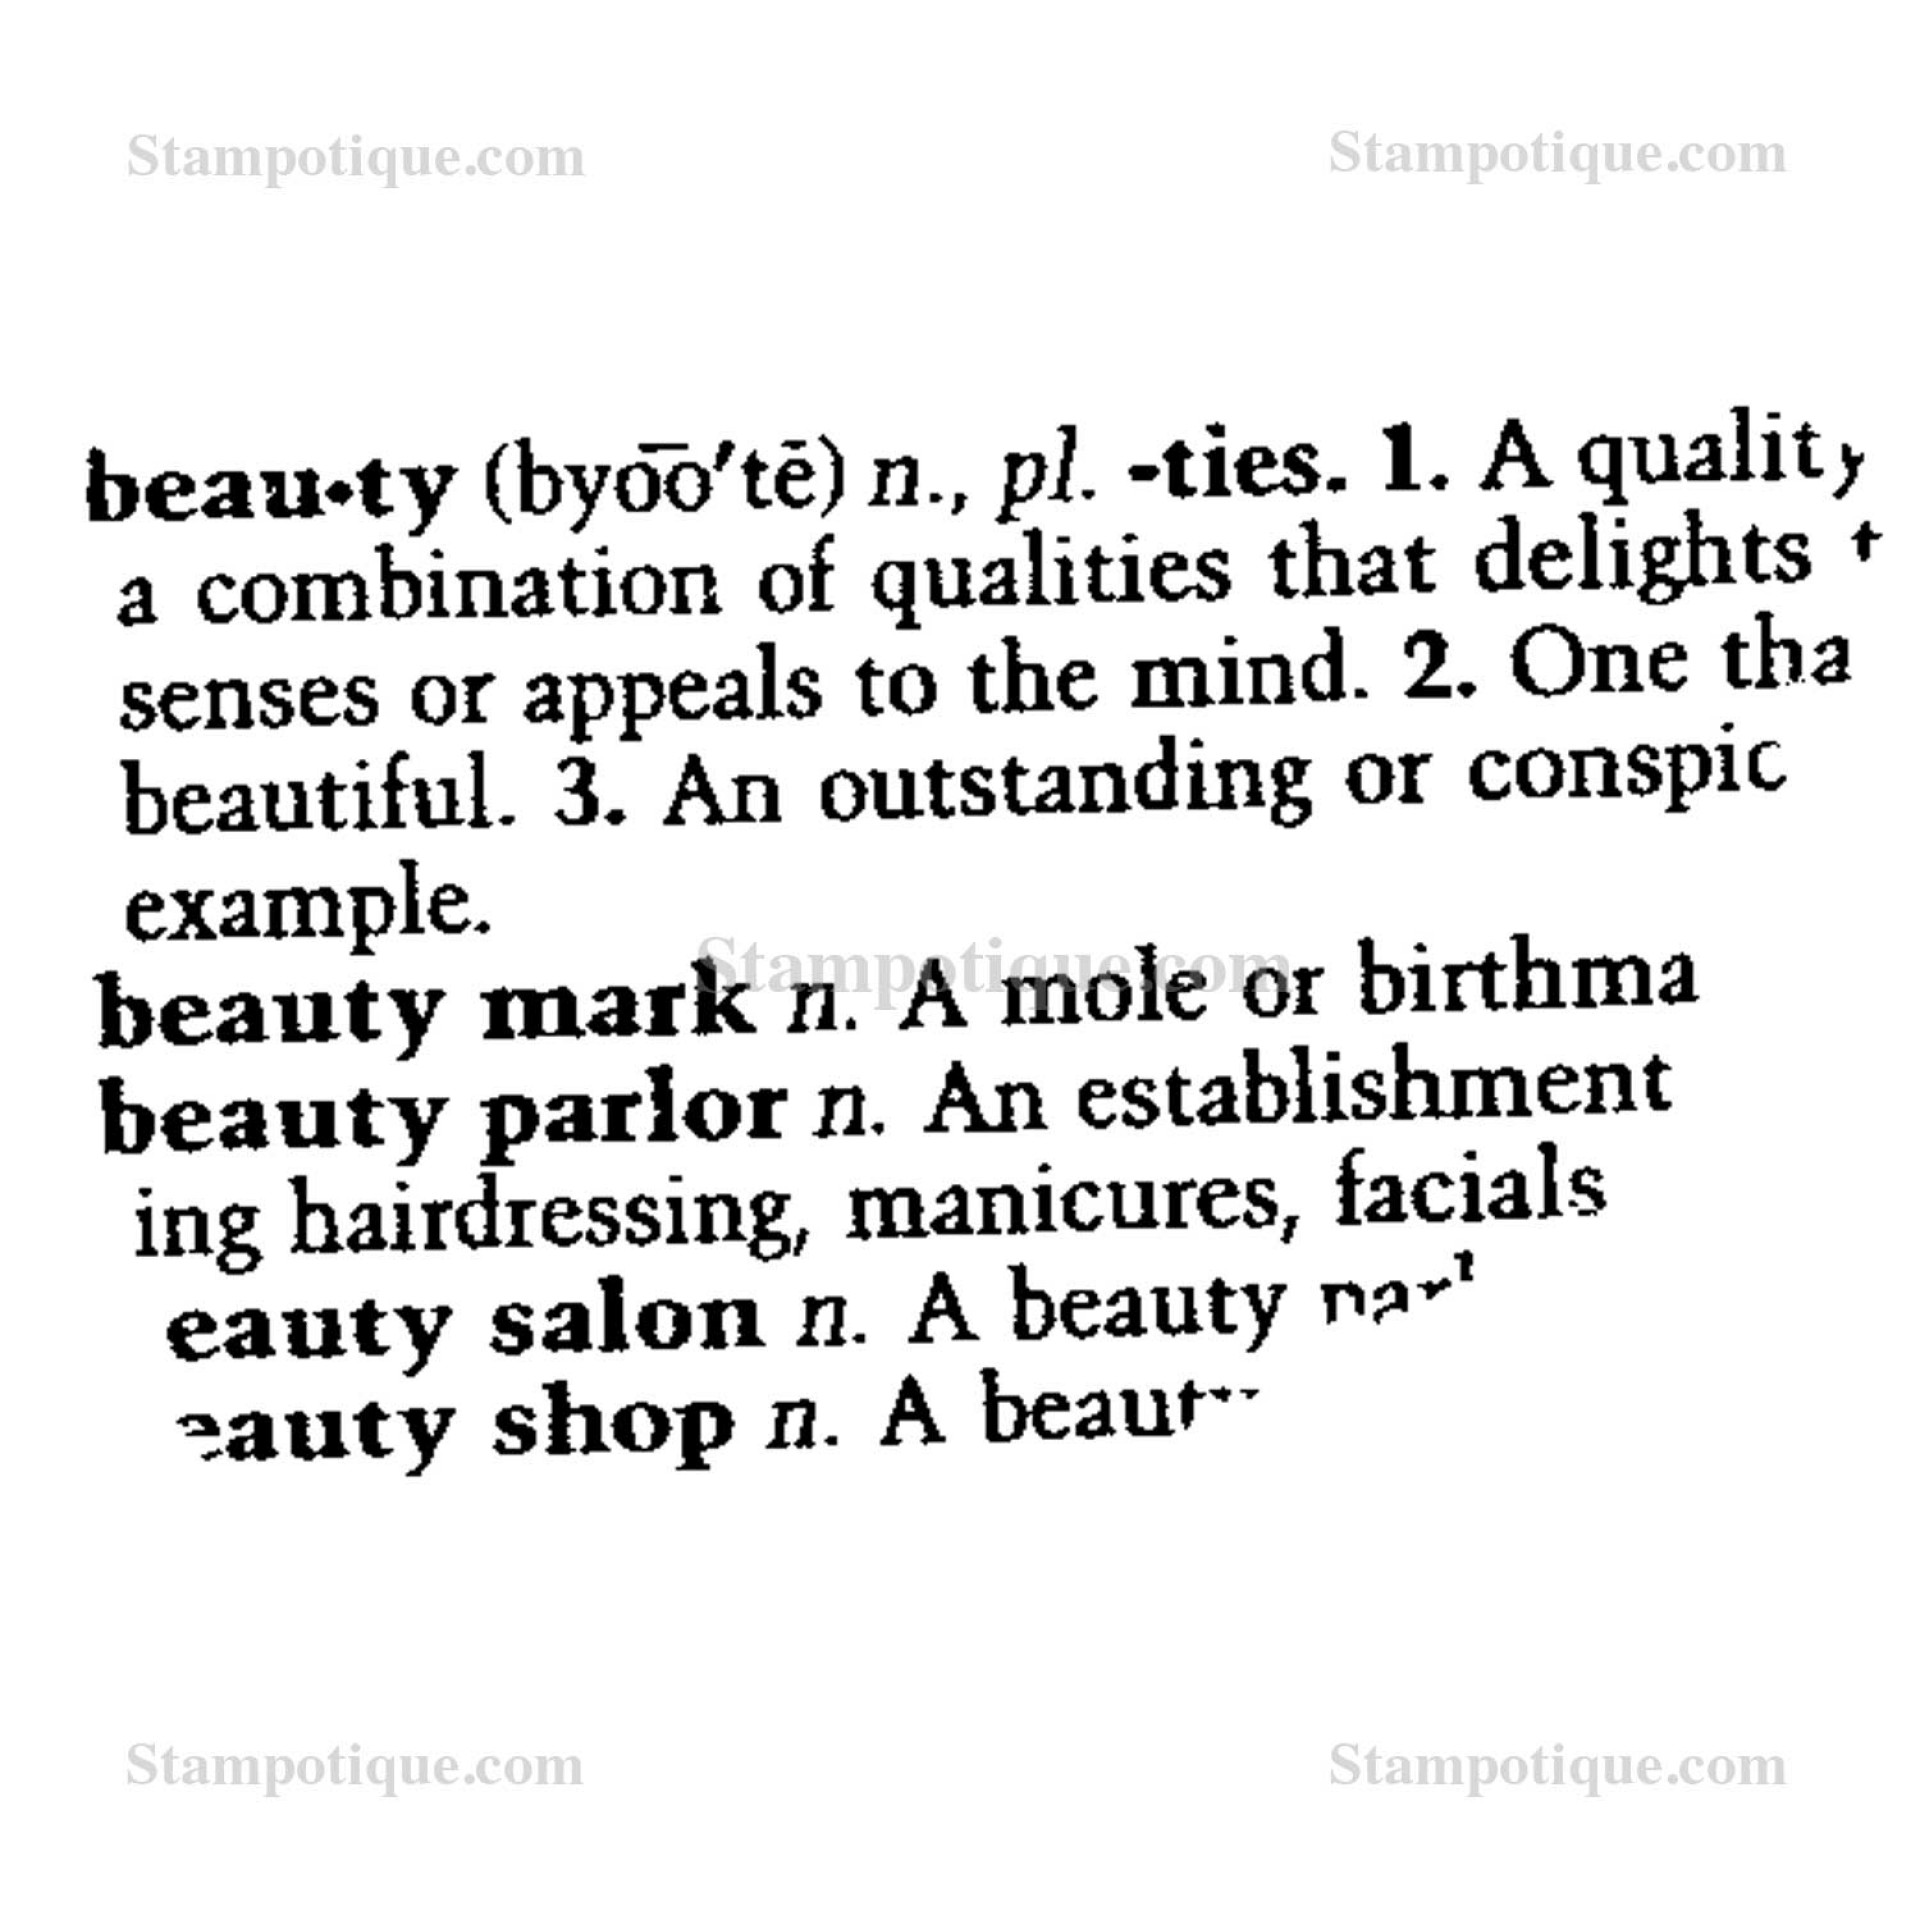 001 7070p Beauty Definition Essay Rare True Meaning Physical Means 1920